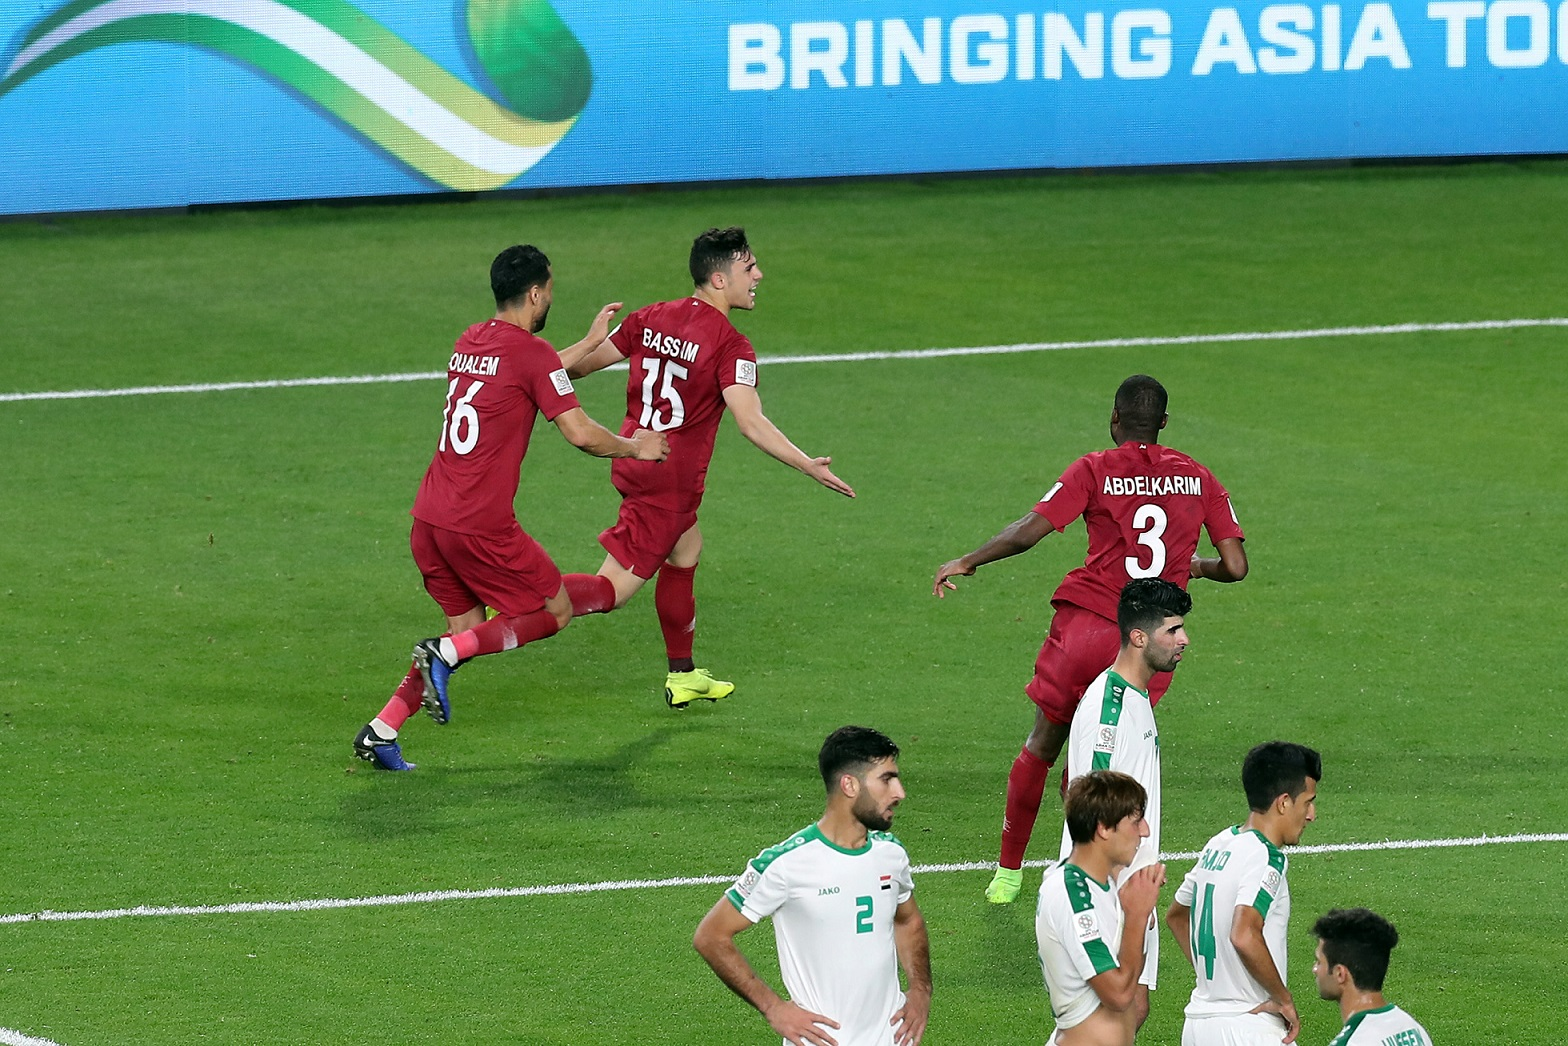 Bassam Al-Rawy, a direct free kick to the next stage (Asian Football Confederation (AFC))